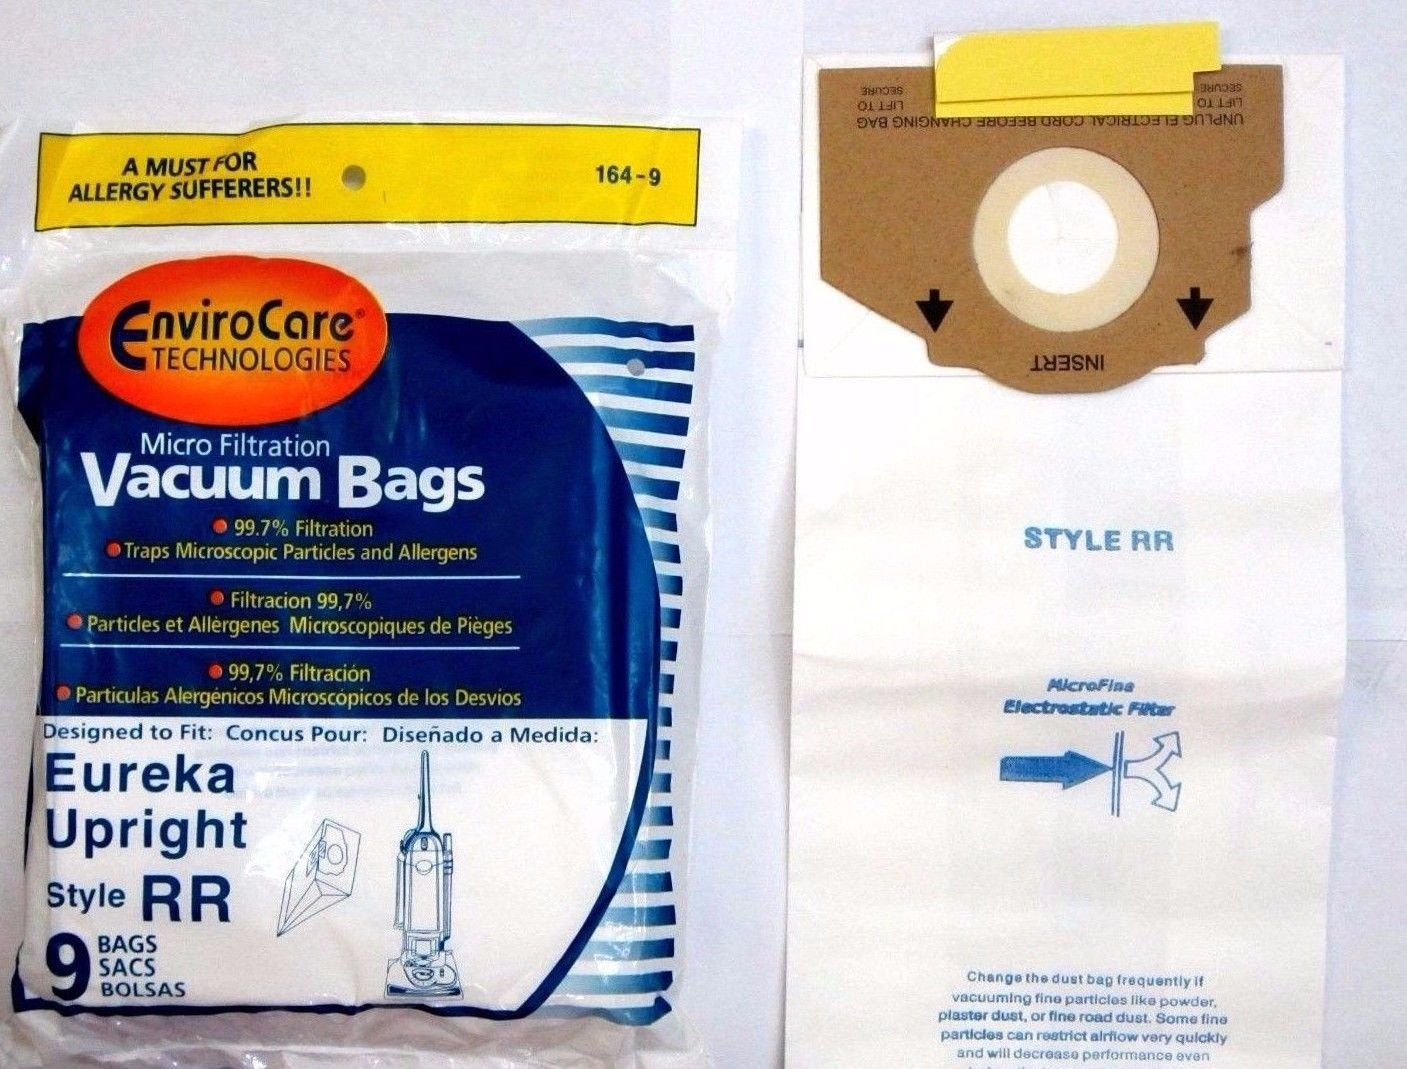 9 Eureka Style RR Vacuum Bags Micro Lined Allergen Filtration #61115 boss smart vac 4800